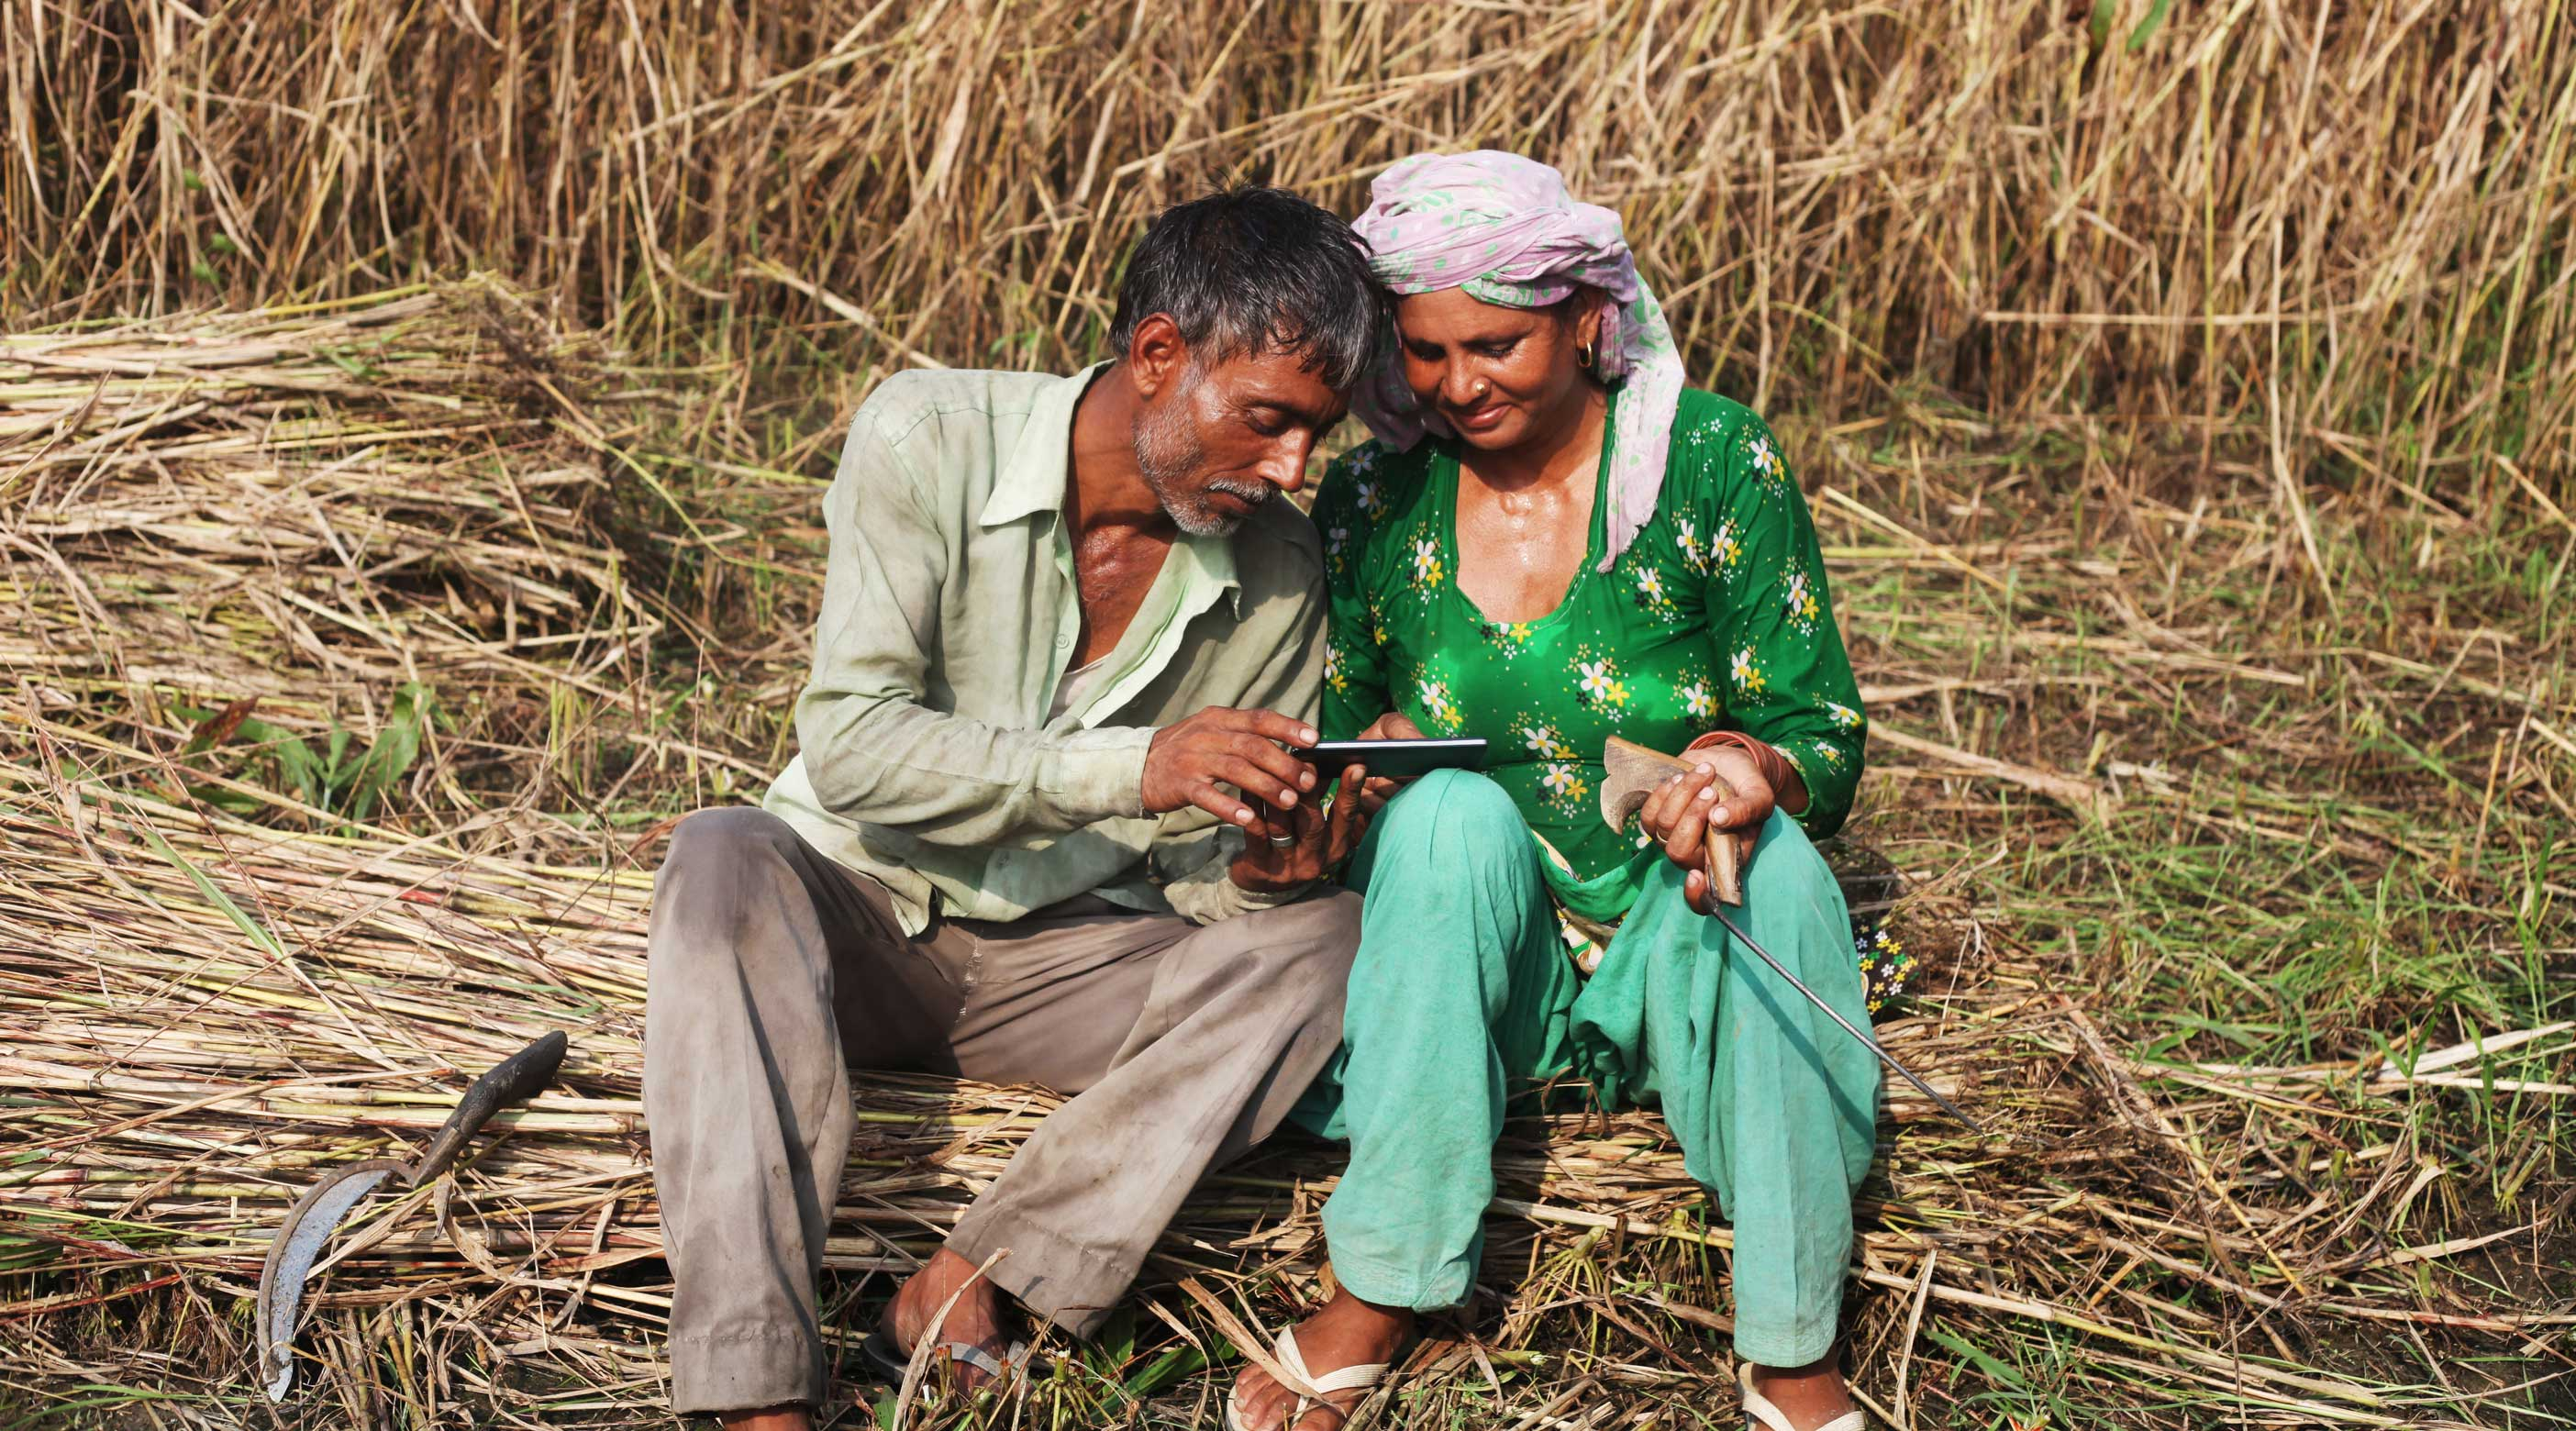 iStock-617772978-XLarge---Indian-man-and-woman-field-using-smartphone-